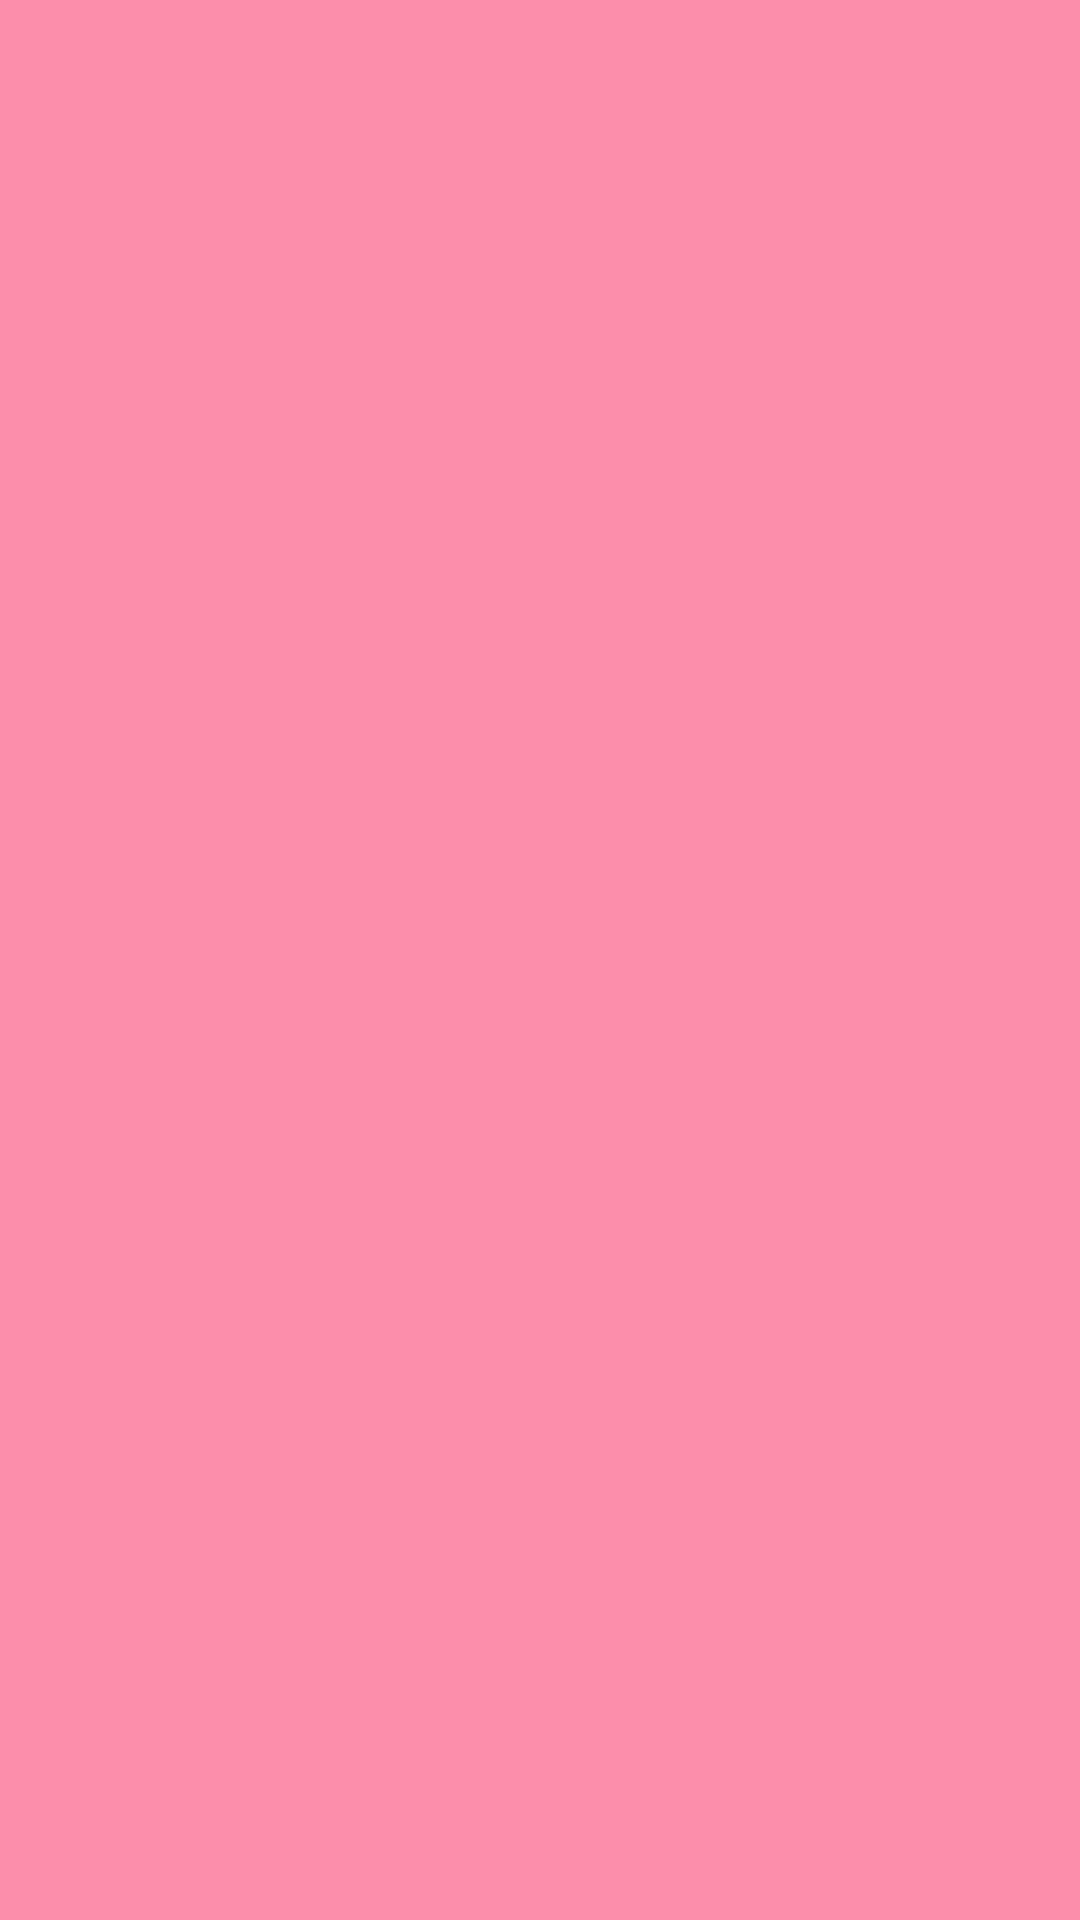 1080x1920 Flamingo Pink Solid Color Background